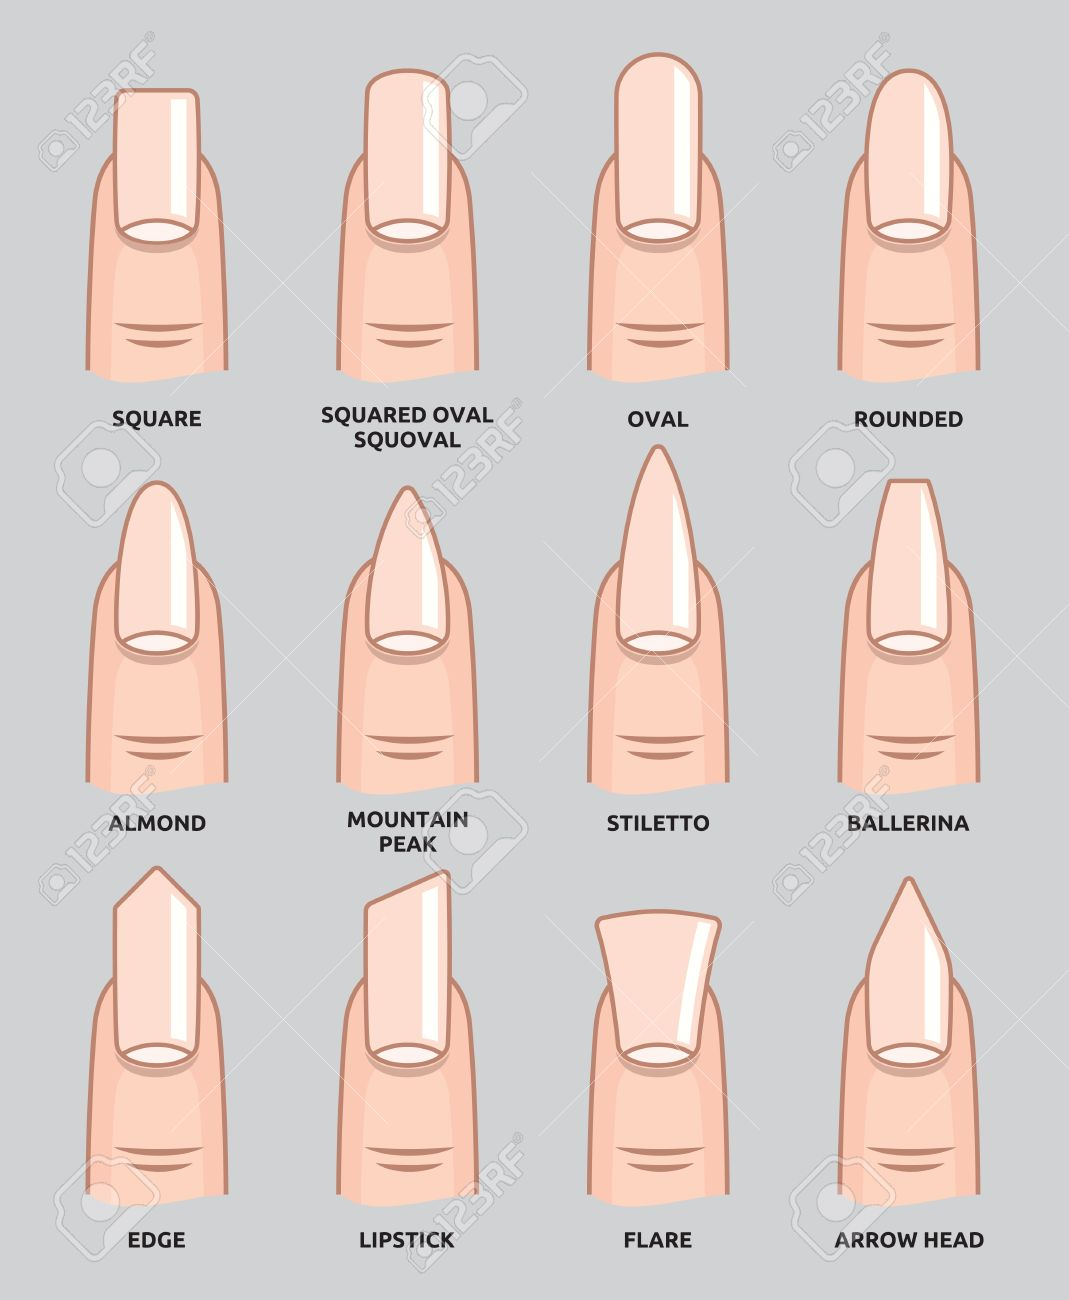 French Manicure Stock Photos. Royalty Free French Manicure Images